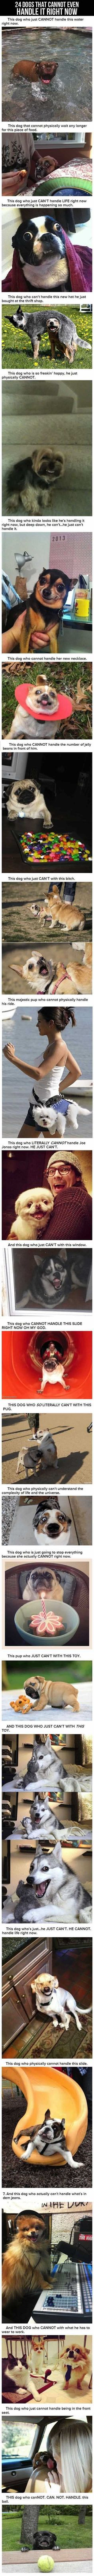 24 Dogs That Cannot Even Handle It Right Now cute animals dogs adorable dog puppy animal pets lol humor funny pictures funny animals funny pets funny dogs